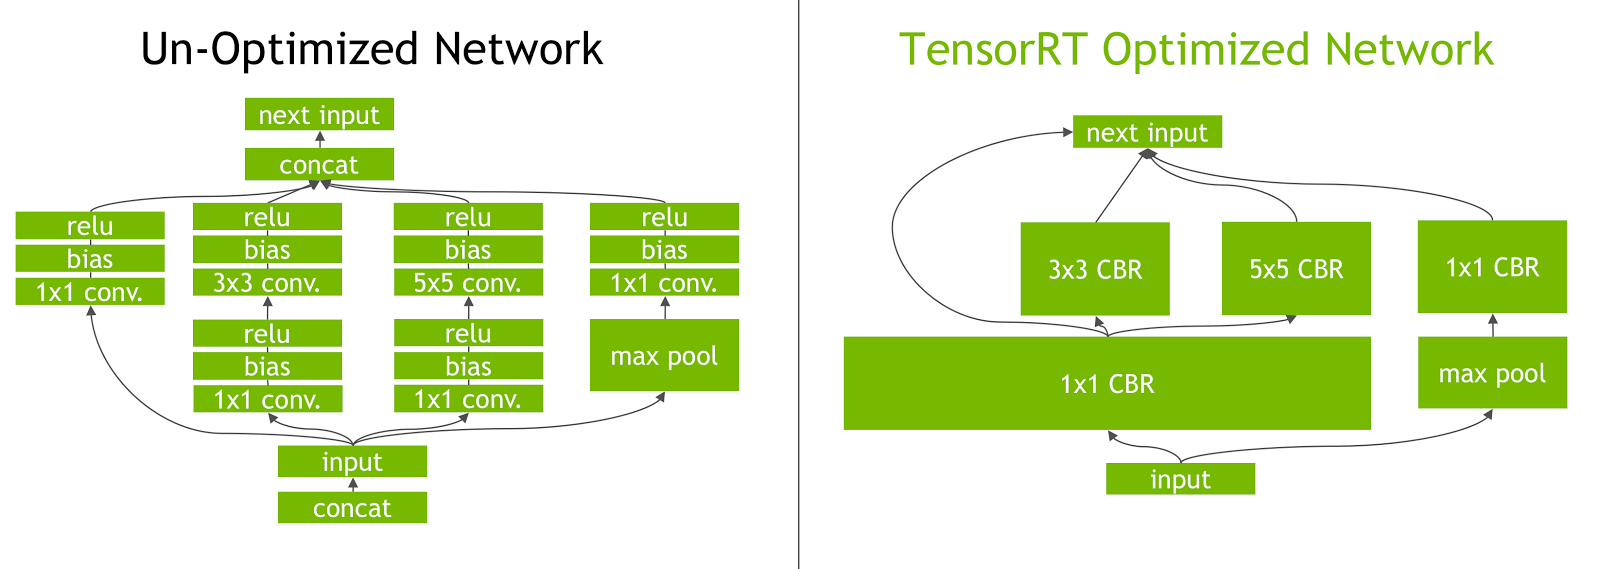 Figure 4. TensorRT's vertical and horizontal layer fusion and layer elimination optimizations simplify the GoogLeNet Inception module graph, reducing computation and memory overhead.